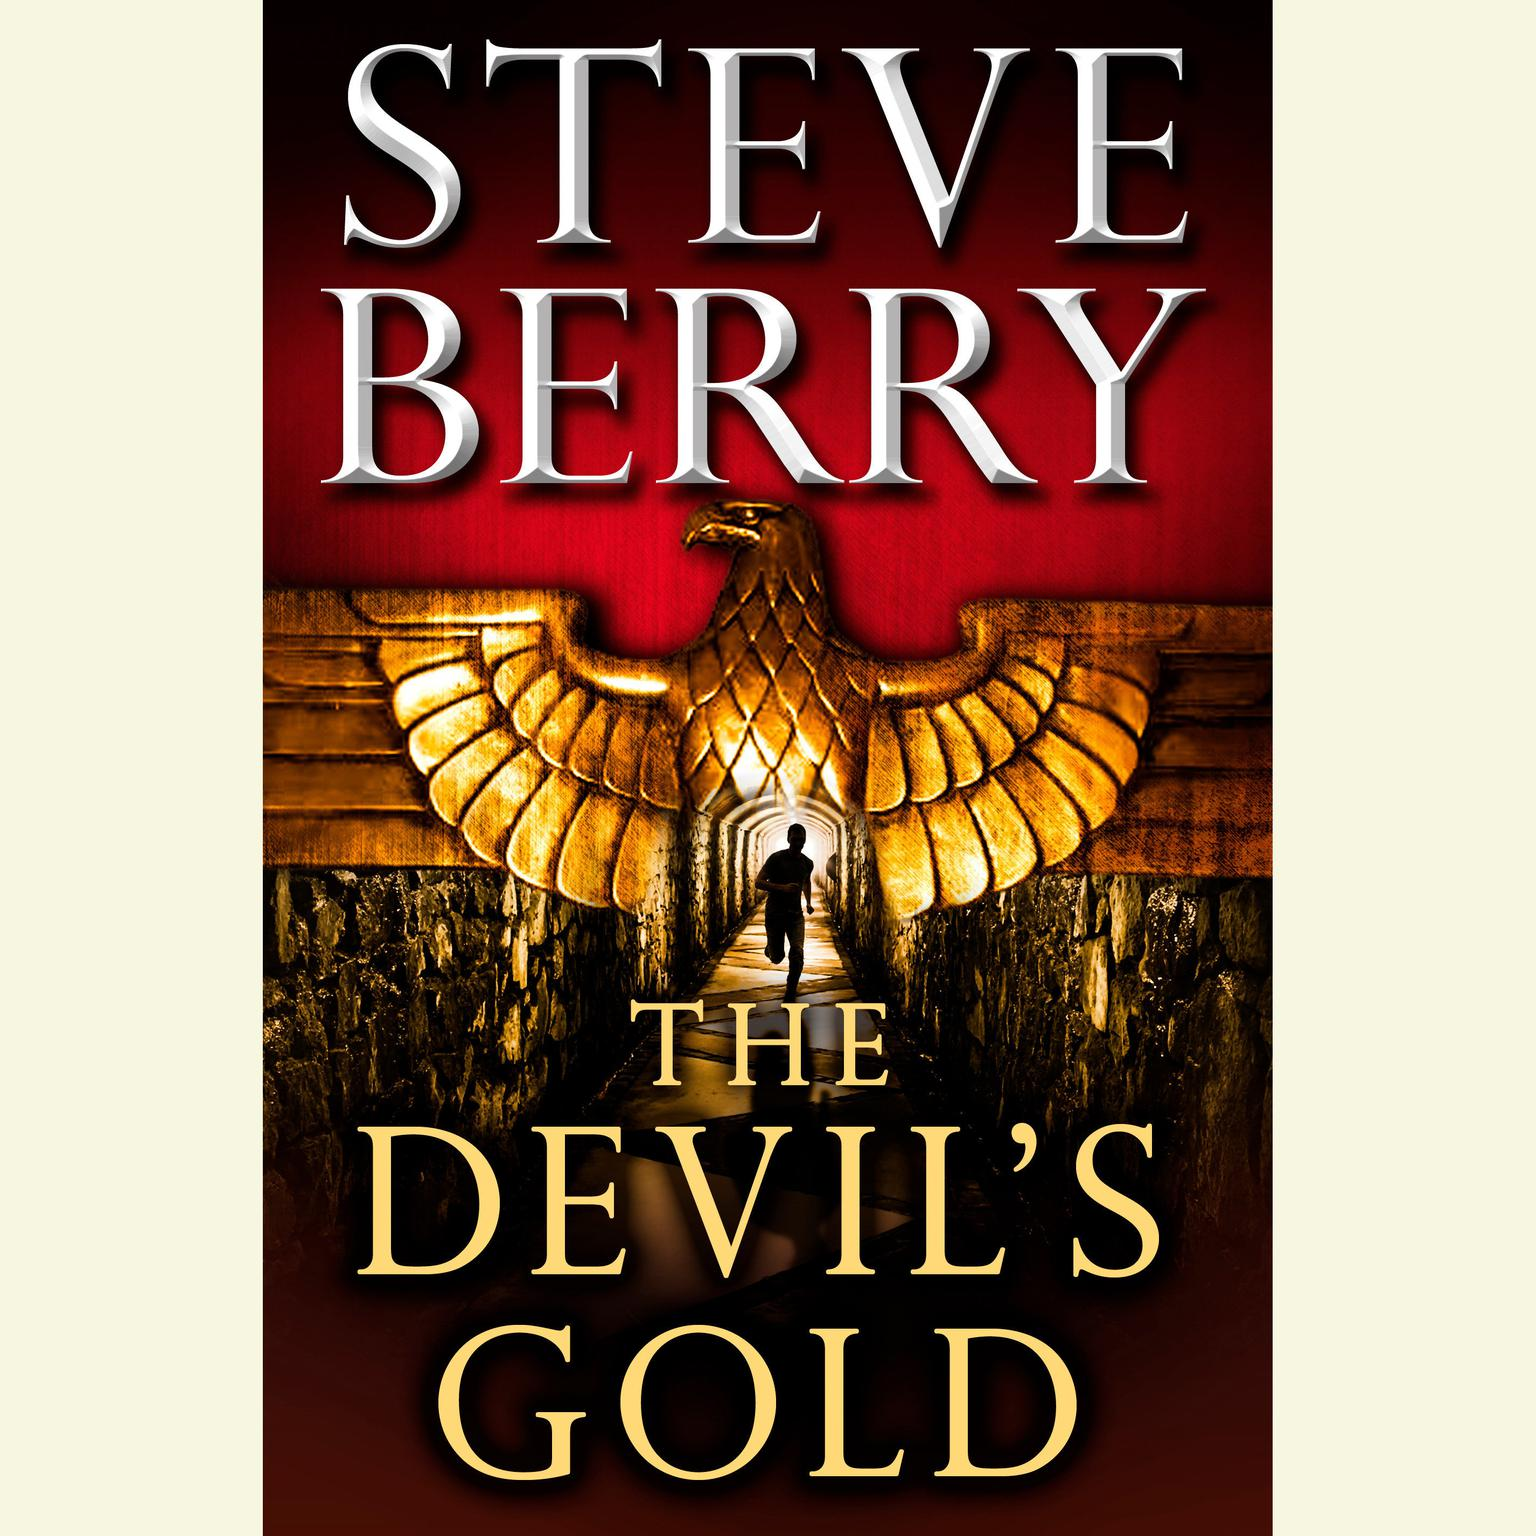 Printable The Devil's Gold (Short Story) Audiobook Cover Art